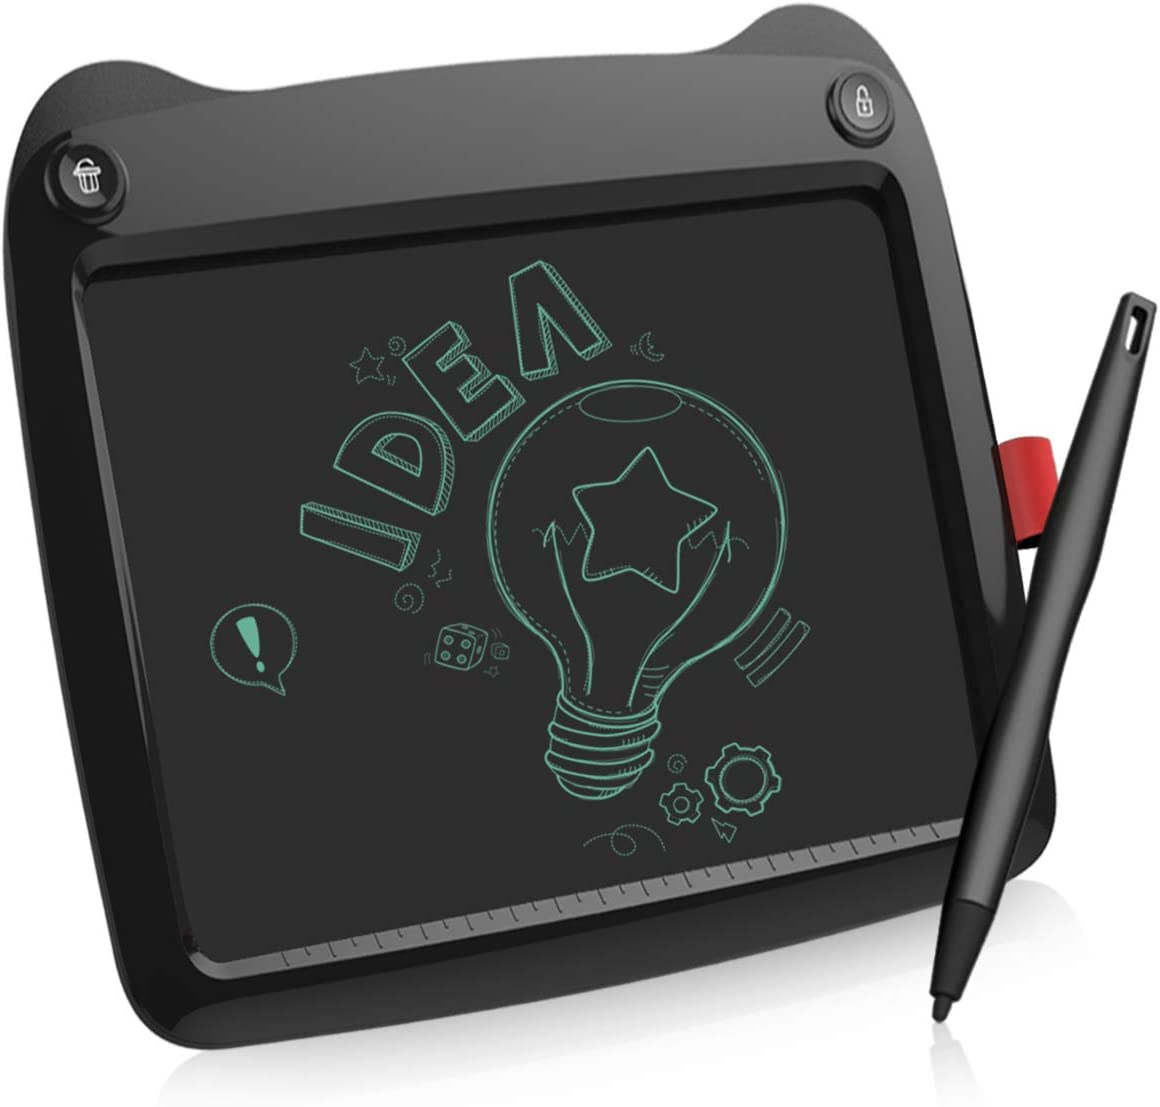 LCD Writing Tablet, 9 Inch Electronic Writing Drawing Pads Portable Doodle Board Gifts for Kids Office Memo Home, EP109B-M-N01, Black